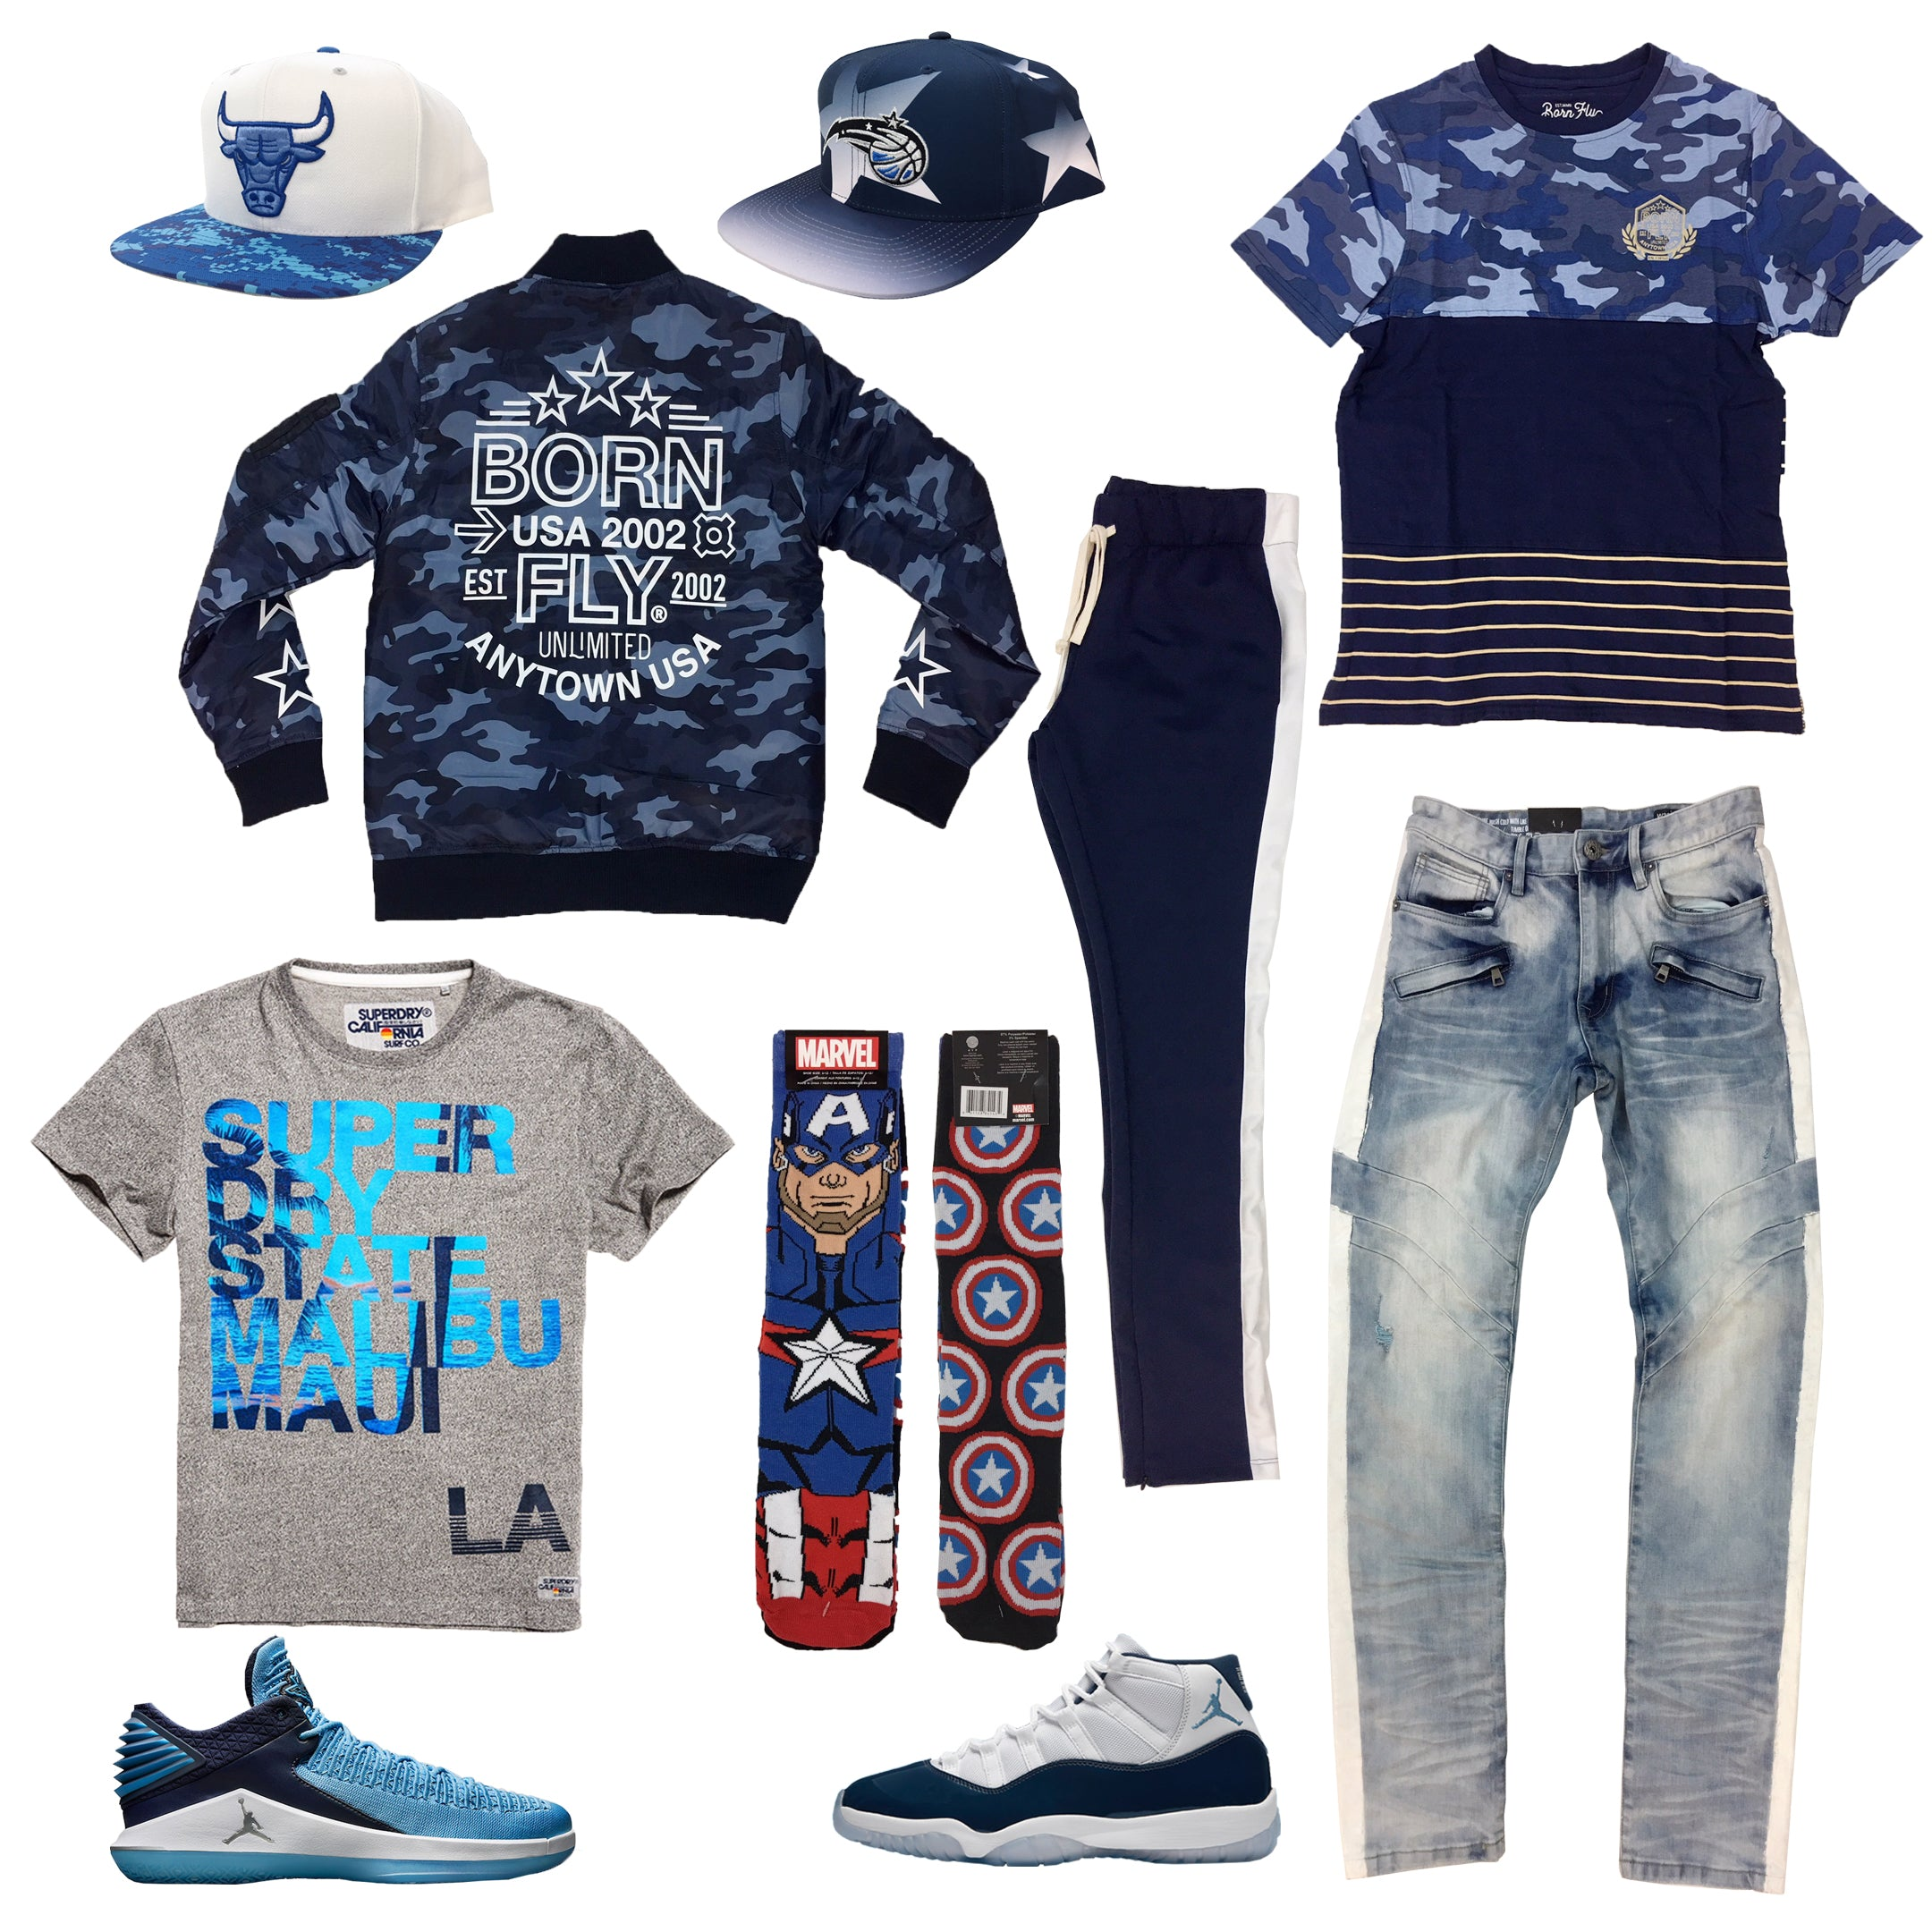 3733bcba067 Air Jordan 11 & 32 Low Win like 82 Outfit20.00 USDHat (Magic),Tee ...